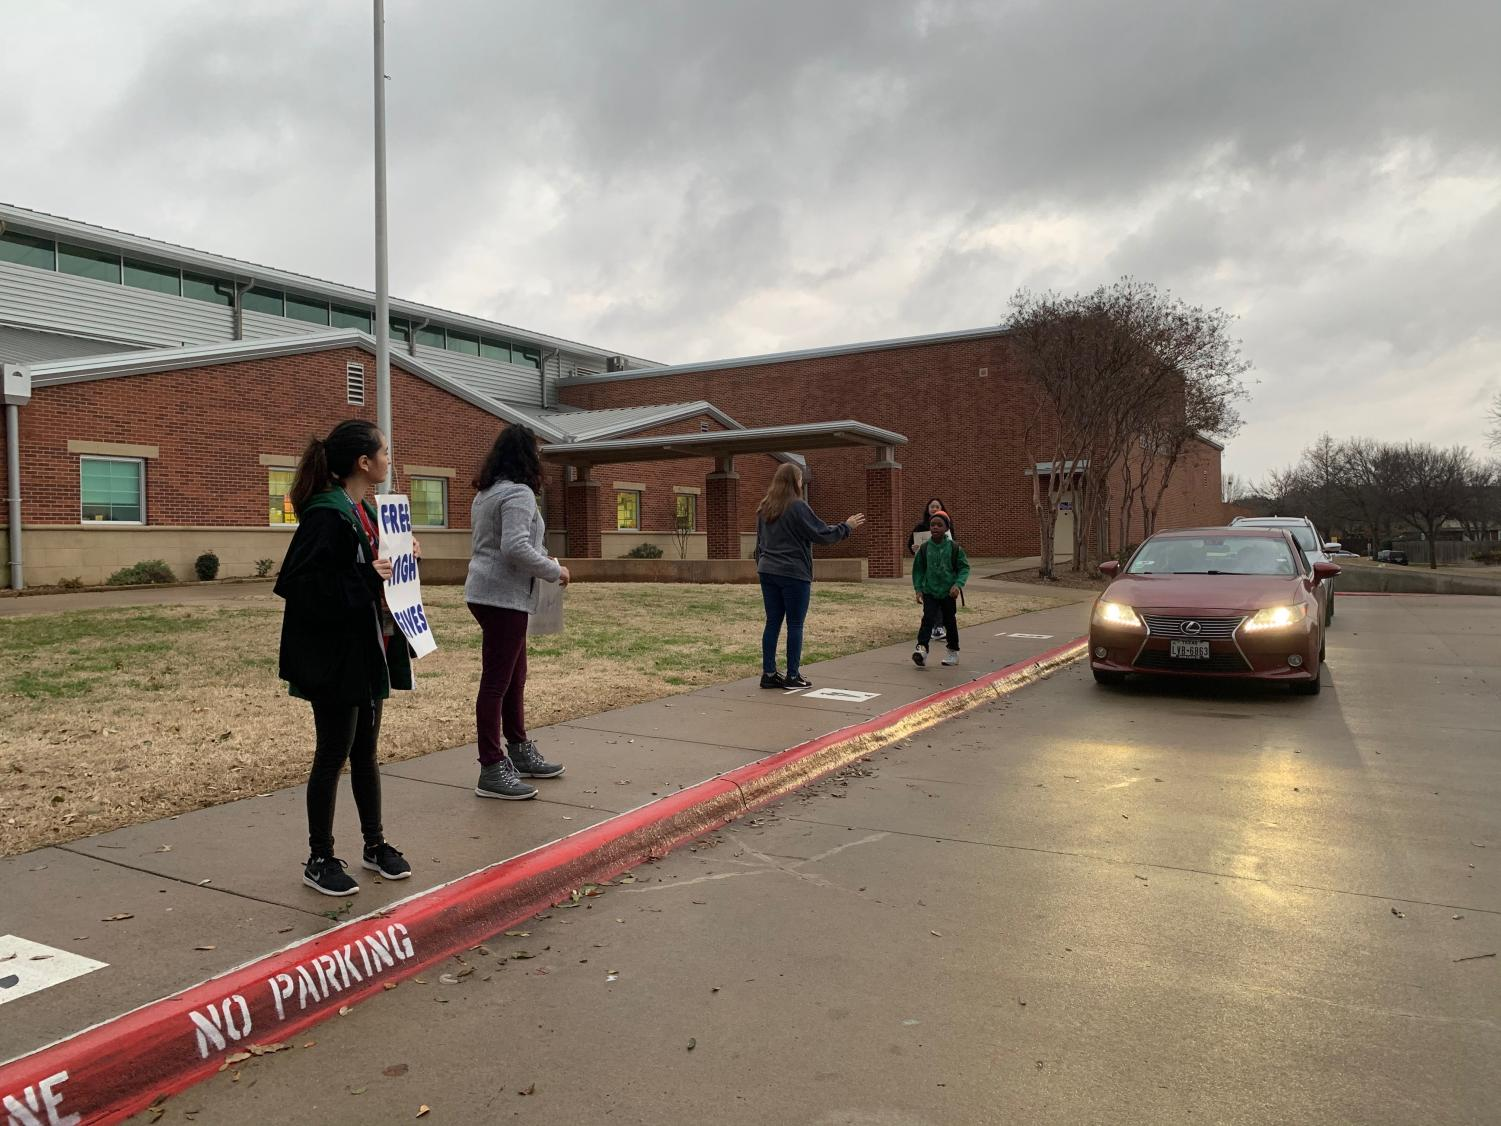 Pulse brought High Five Friday to Anderson Elementary on Friday morning. Pulse looked to promote positivity beyond campus and spread it throughout the district.